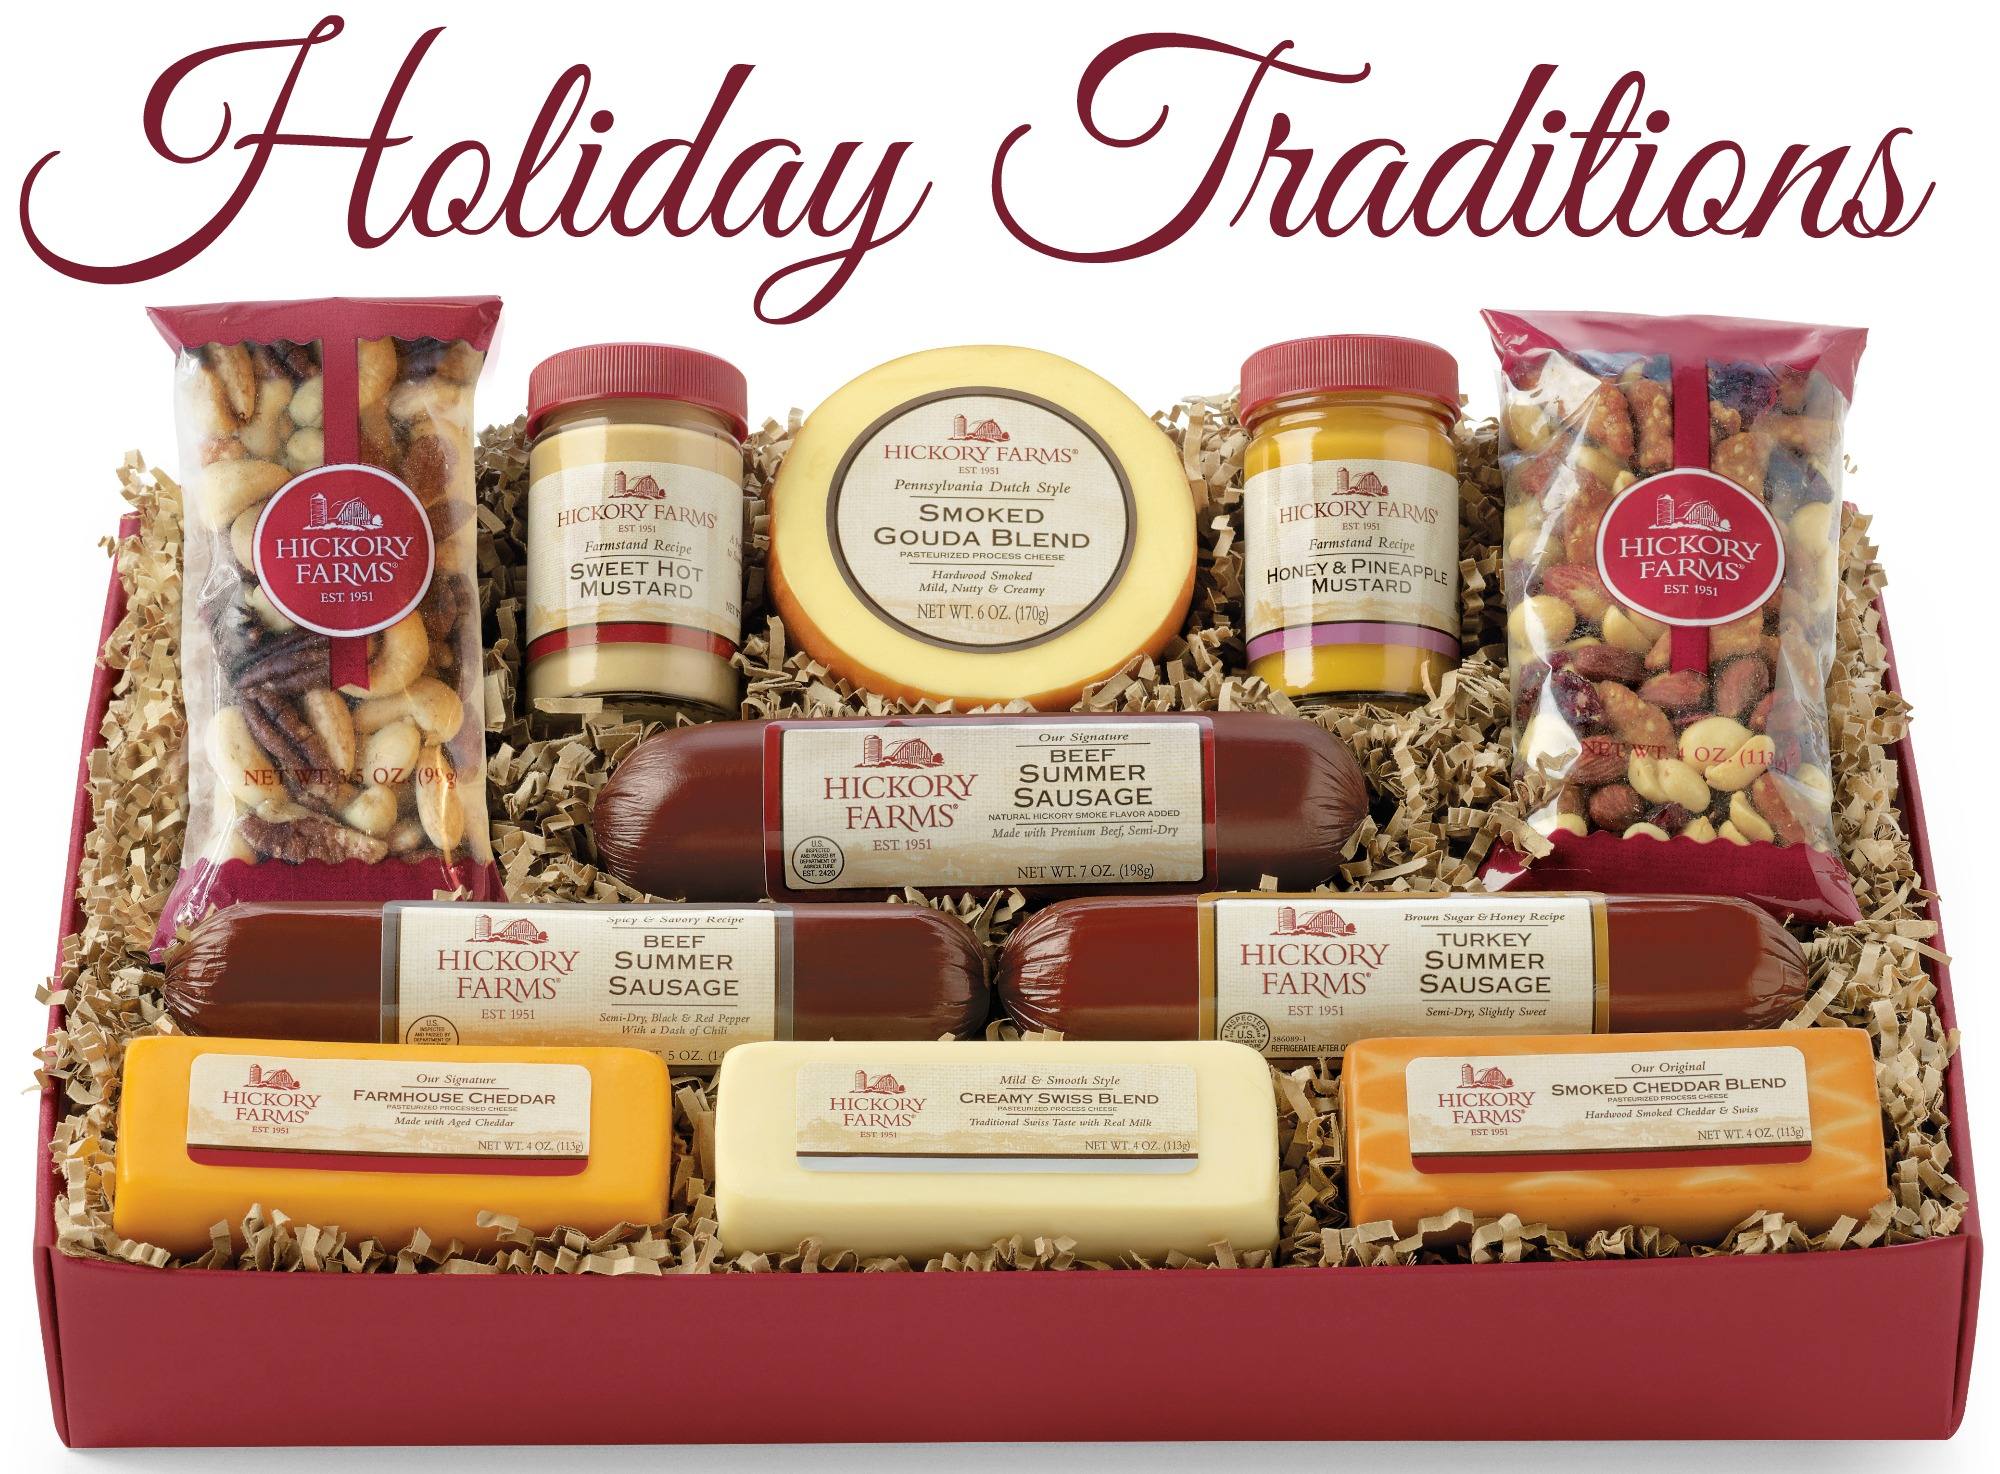 Holiday Traditions with Hickory Farms - A Little Craft In Your Day